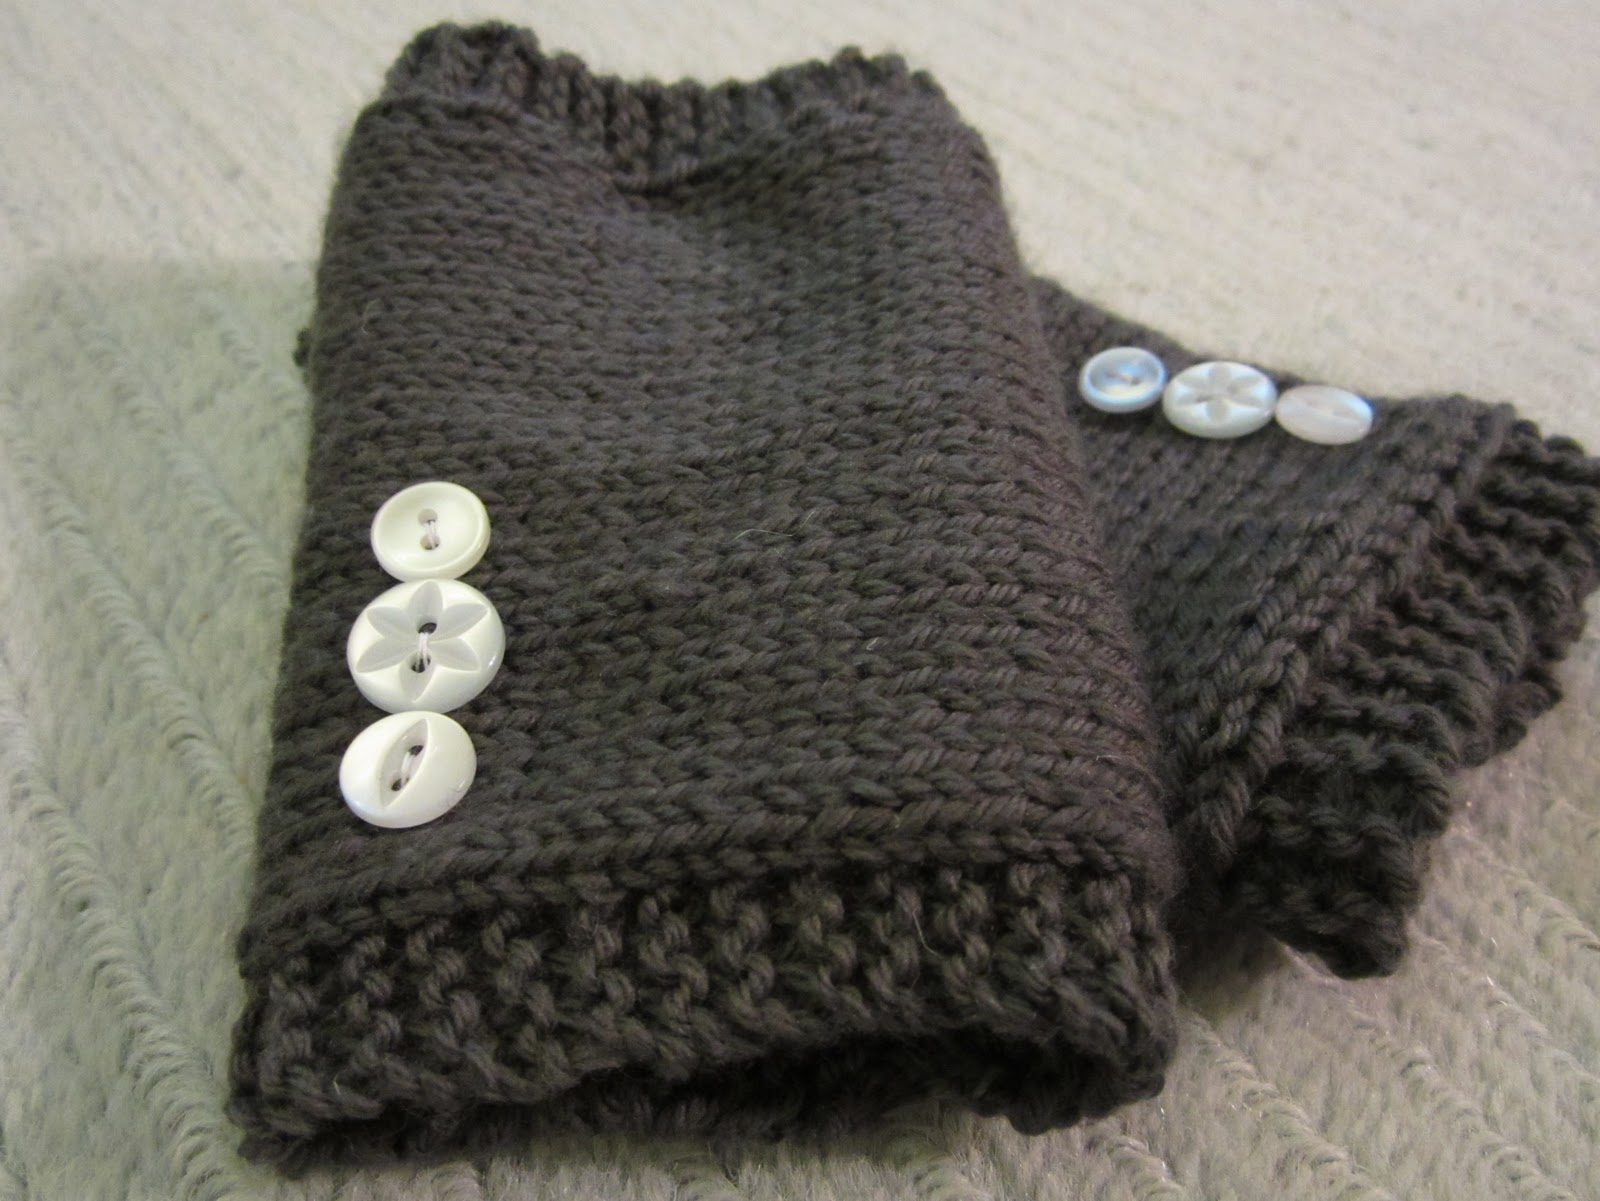 Knitted Hand Warmers ~ Crafty Weekend: Craft projects for the weekend